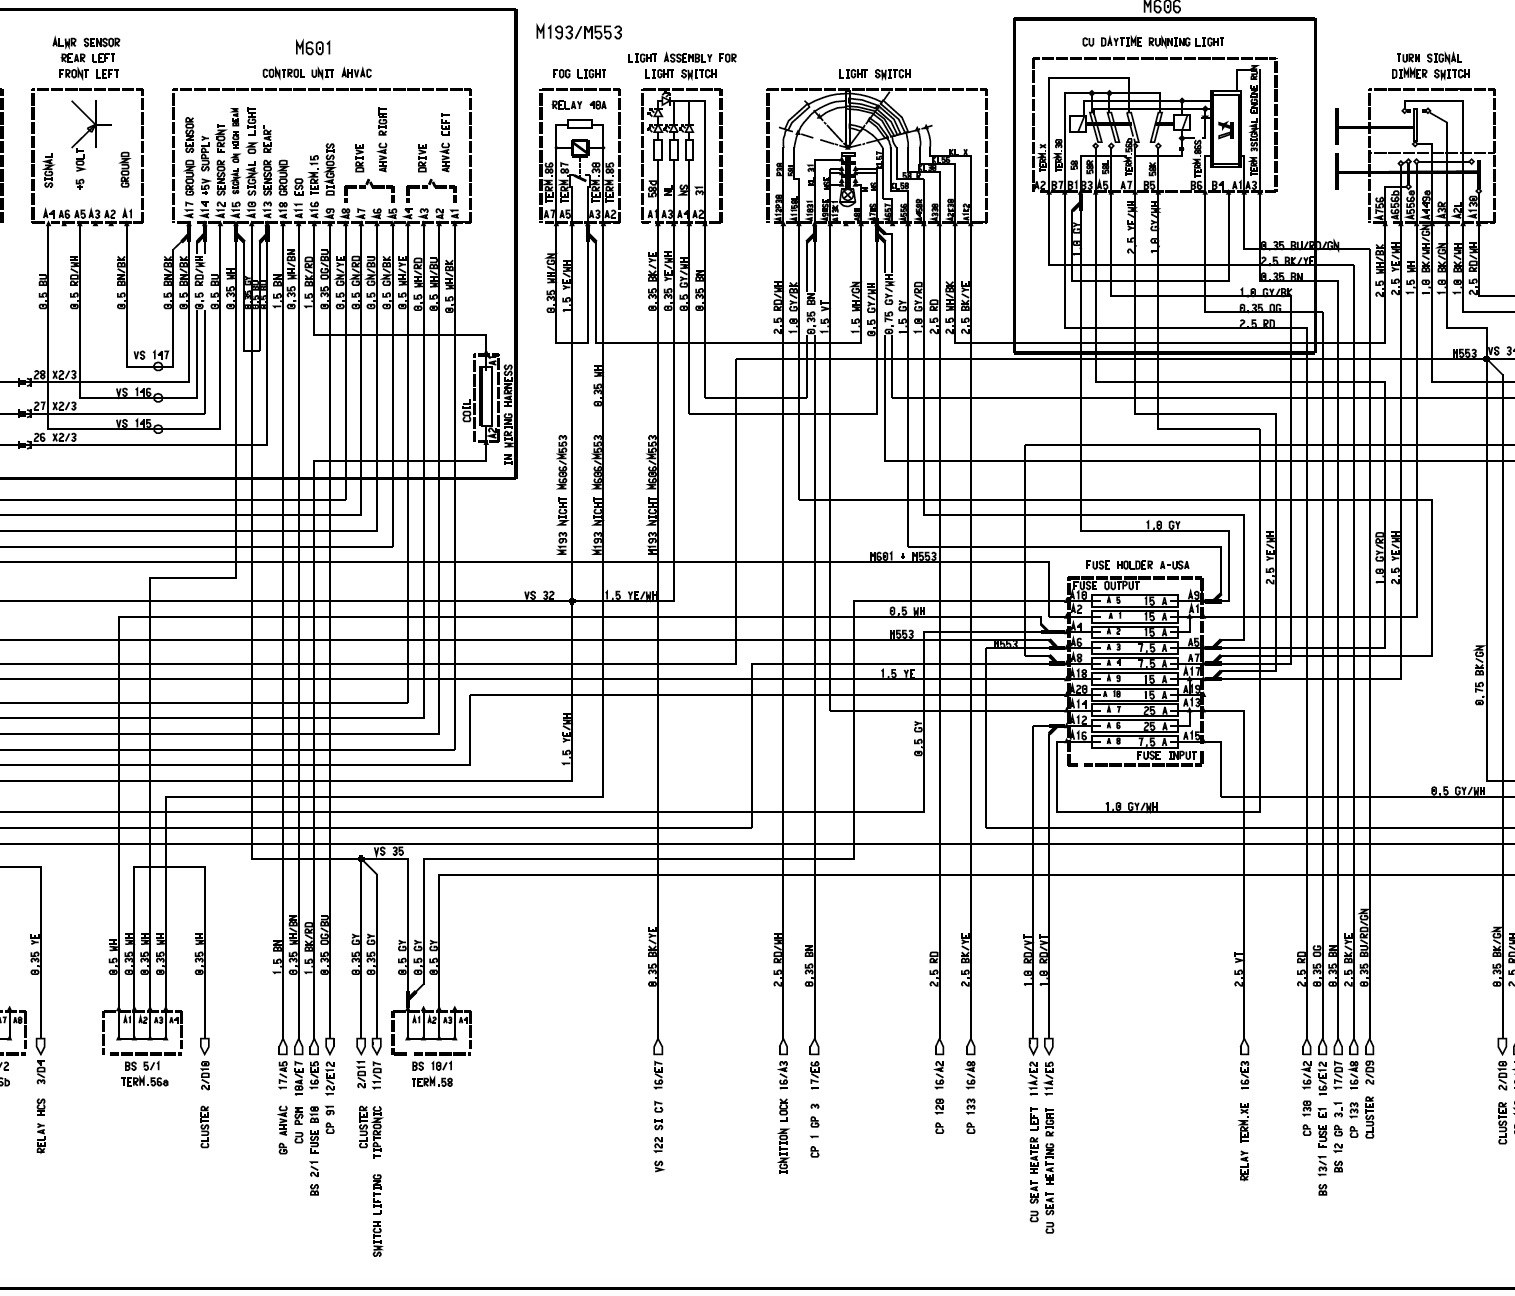 DIAGRAM] Porsche Boxster 2002 Wiring Diagram FULL Version HD Quality Wiring  Diagram - HEALTHYDIAGRAMS.RAPFRANCE.FRDatabase Design Tool